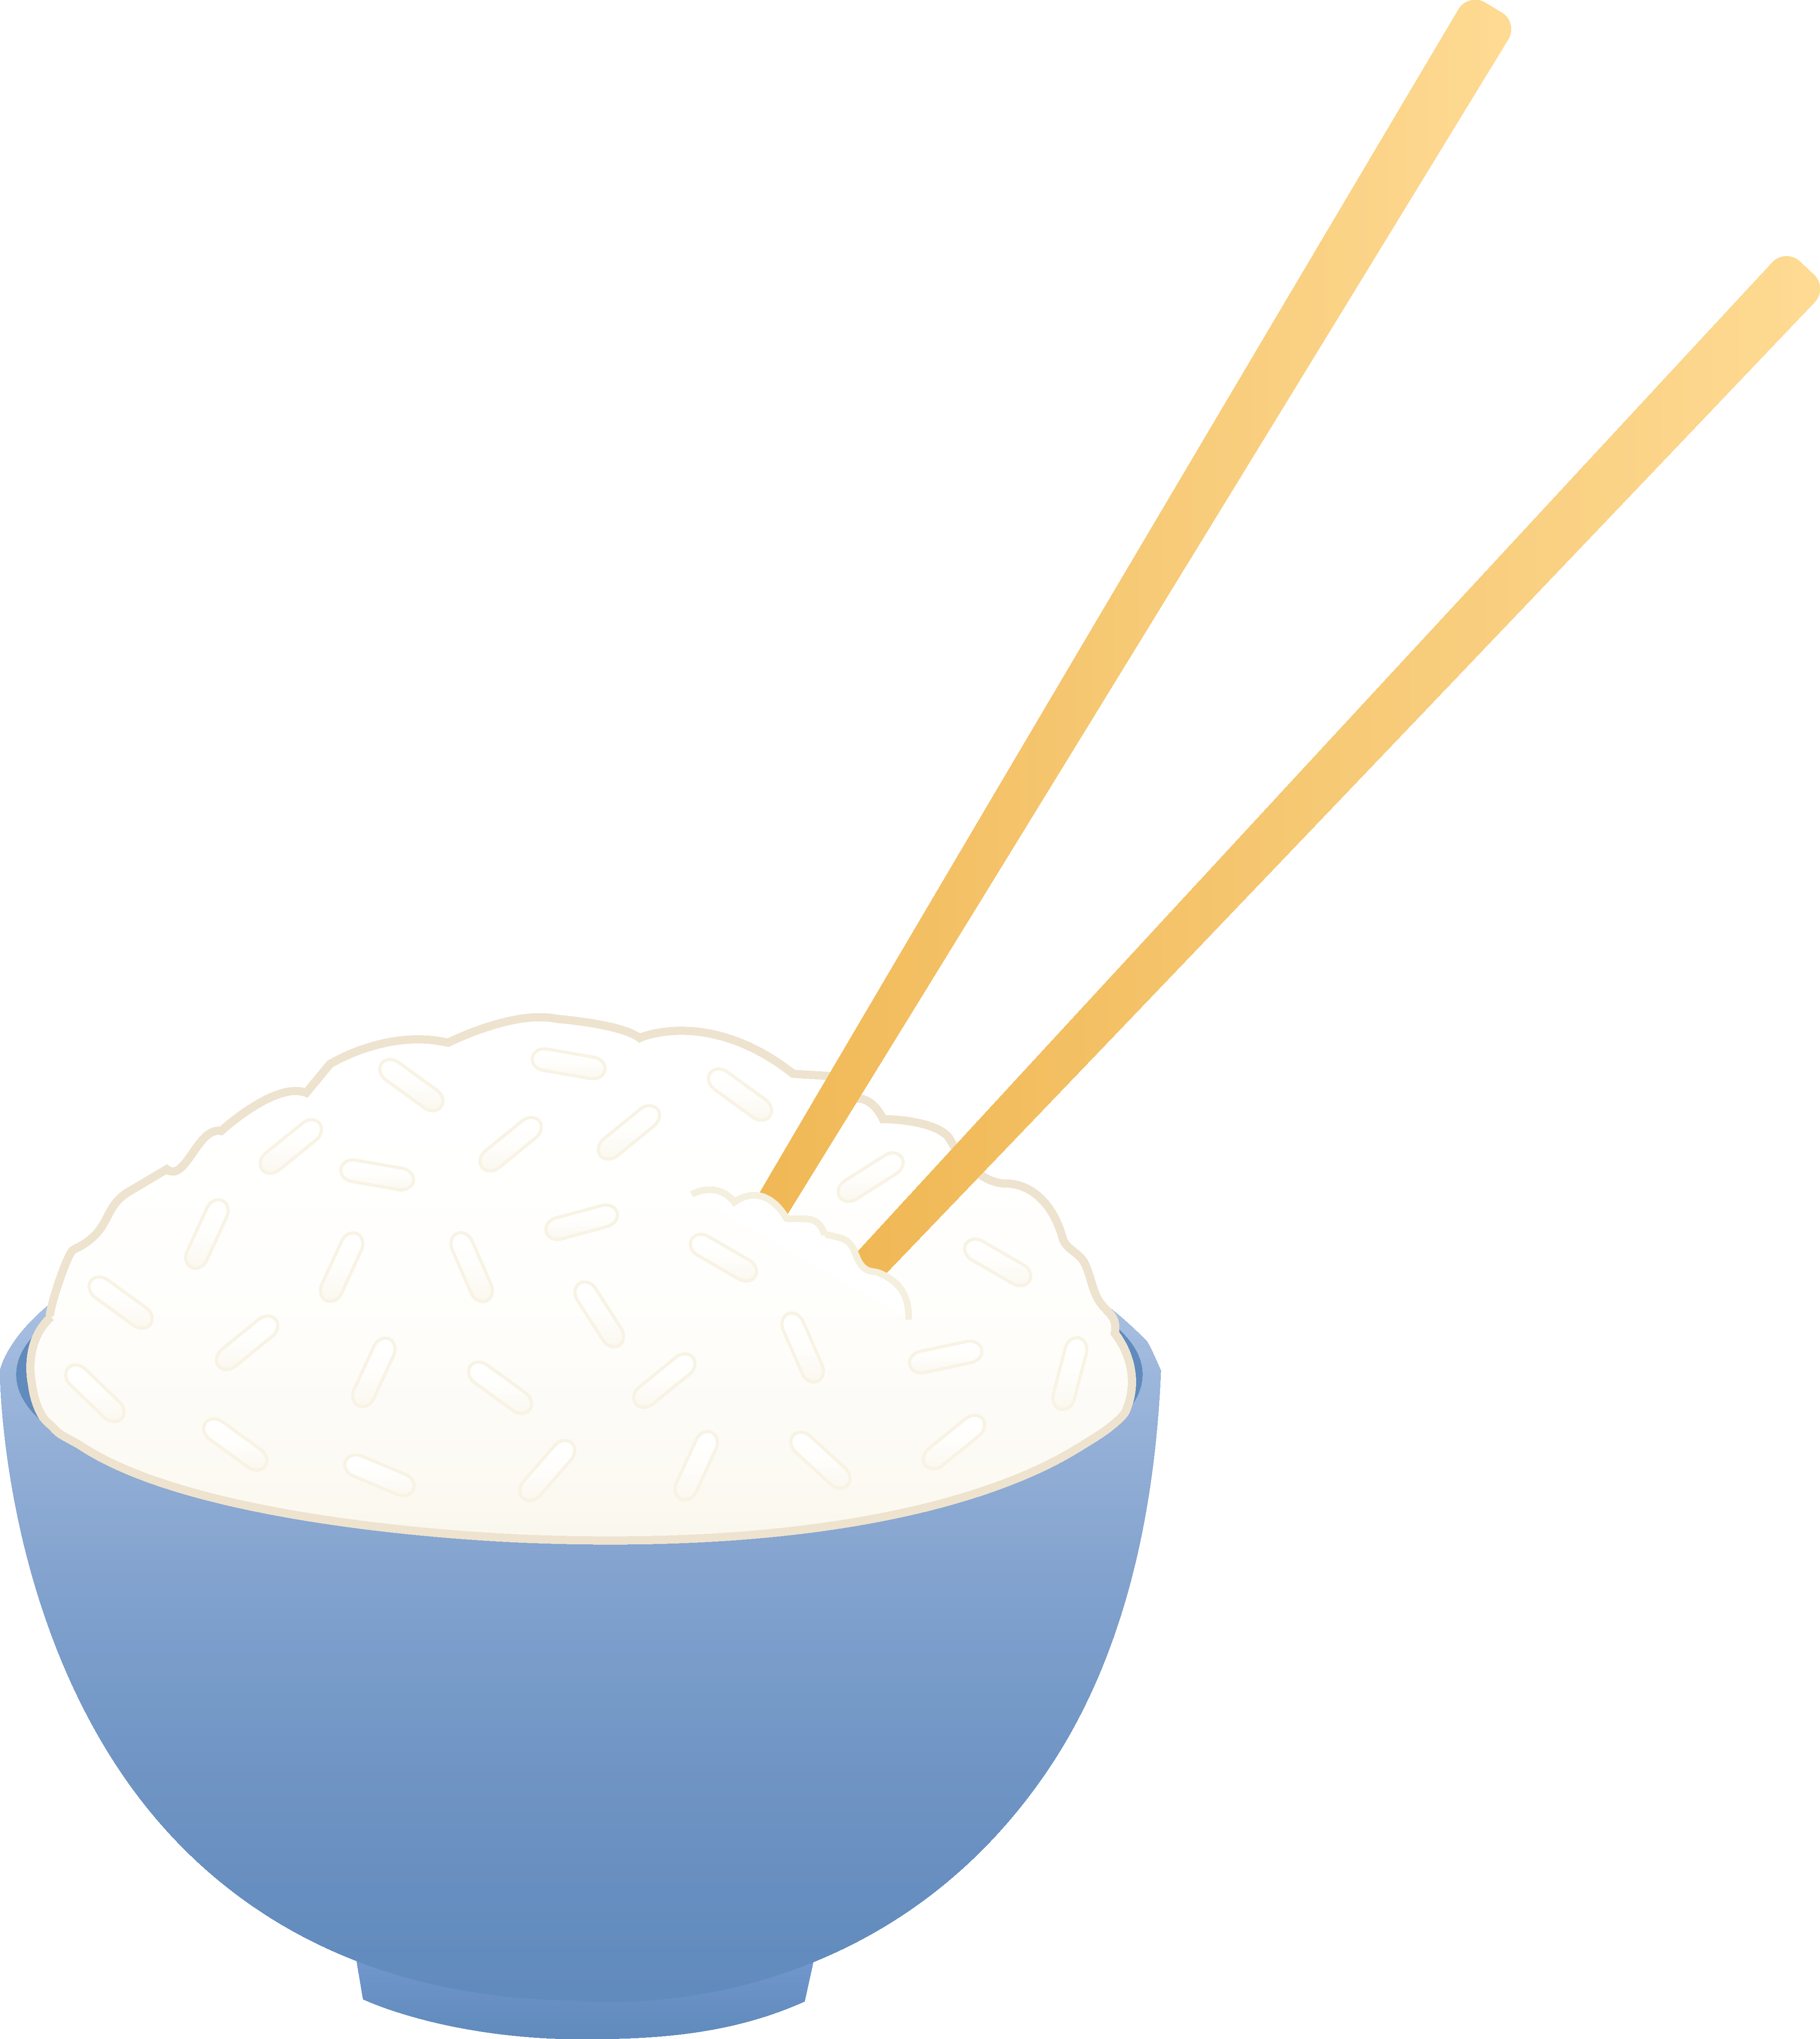 4644x5202 Bowl Of White Rice With Chopsticks